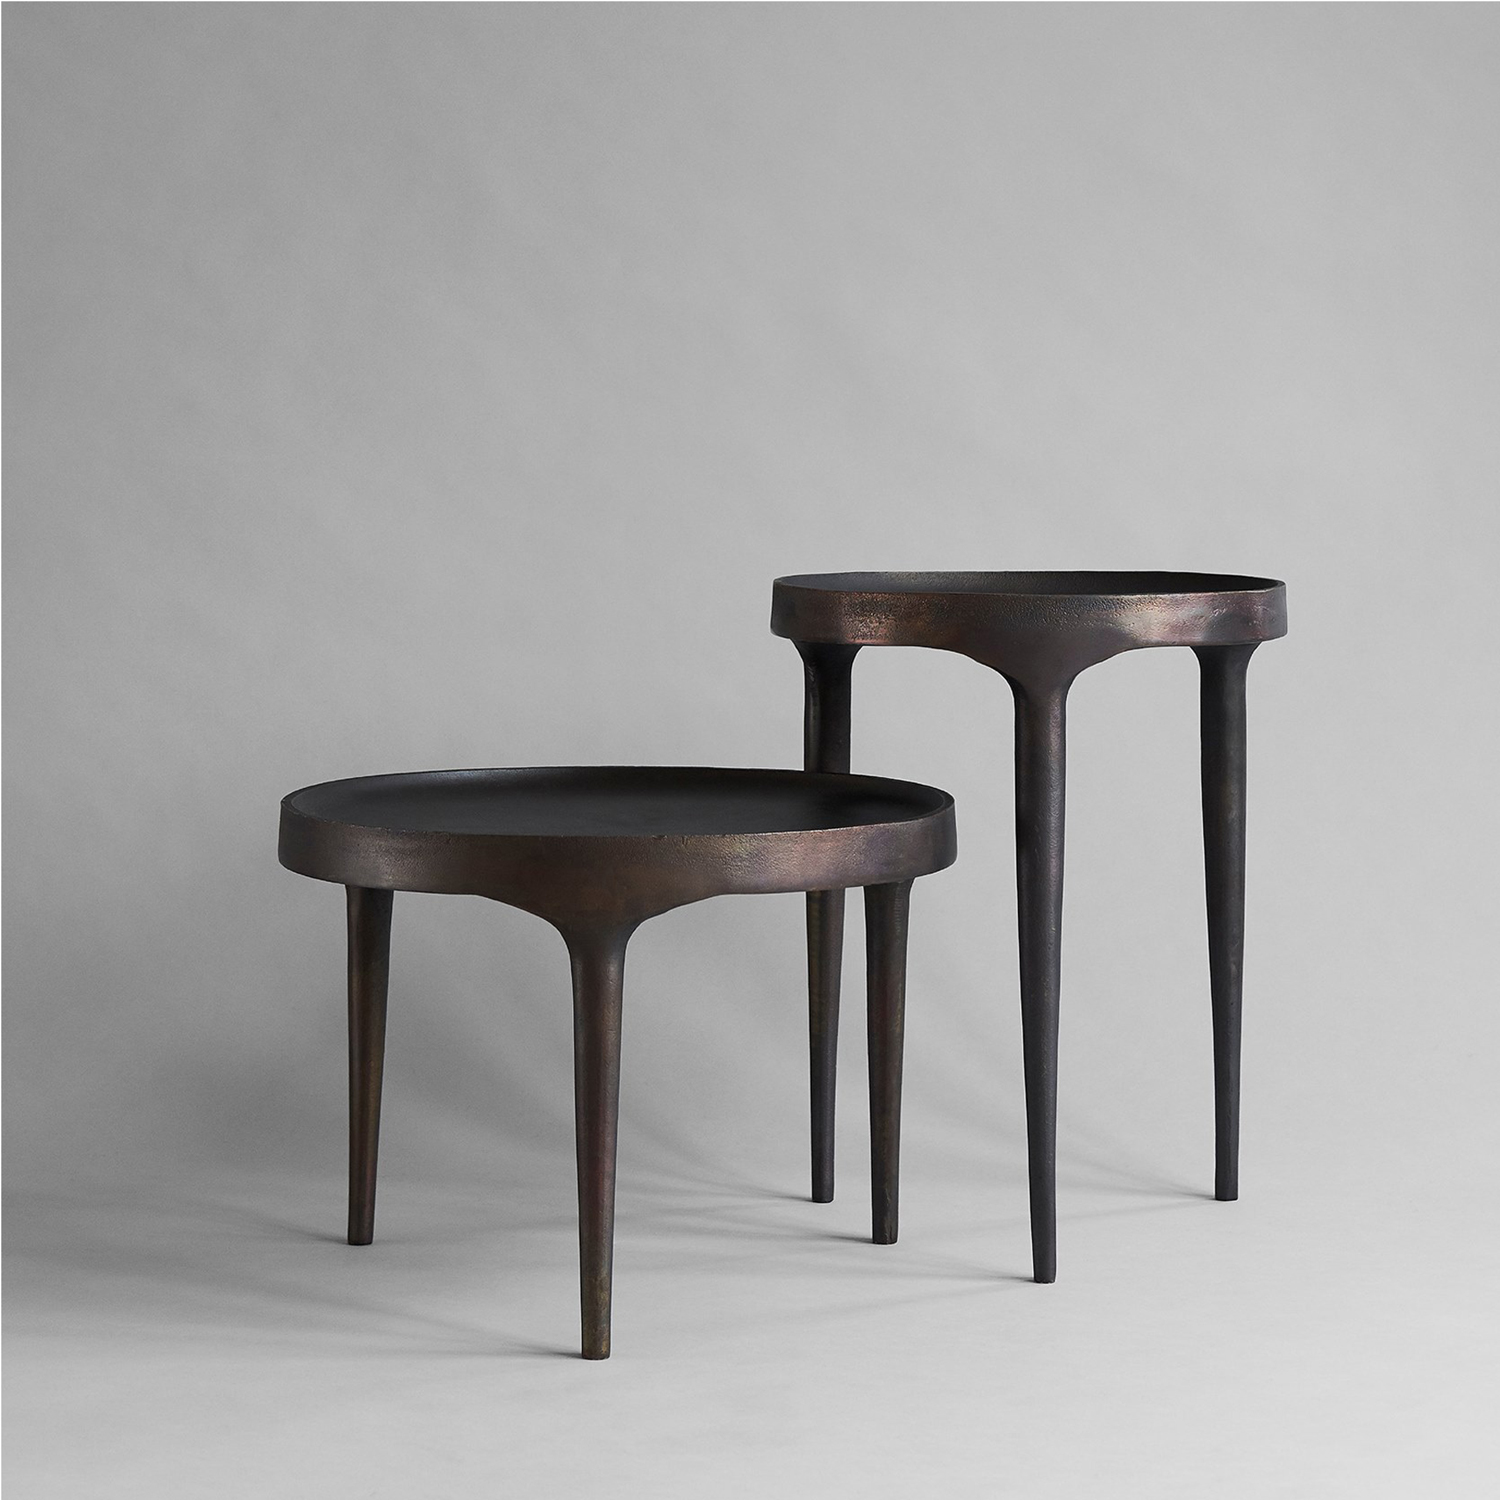 Phantom Low Coffee Table - The Phantom Coffee Table Low in Burn Antique has a modern profile with a sophisticated and subtle design embedded in its expression    Matter of Stuff